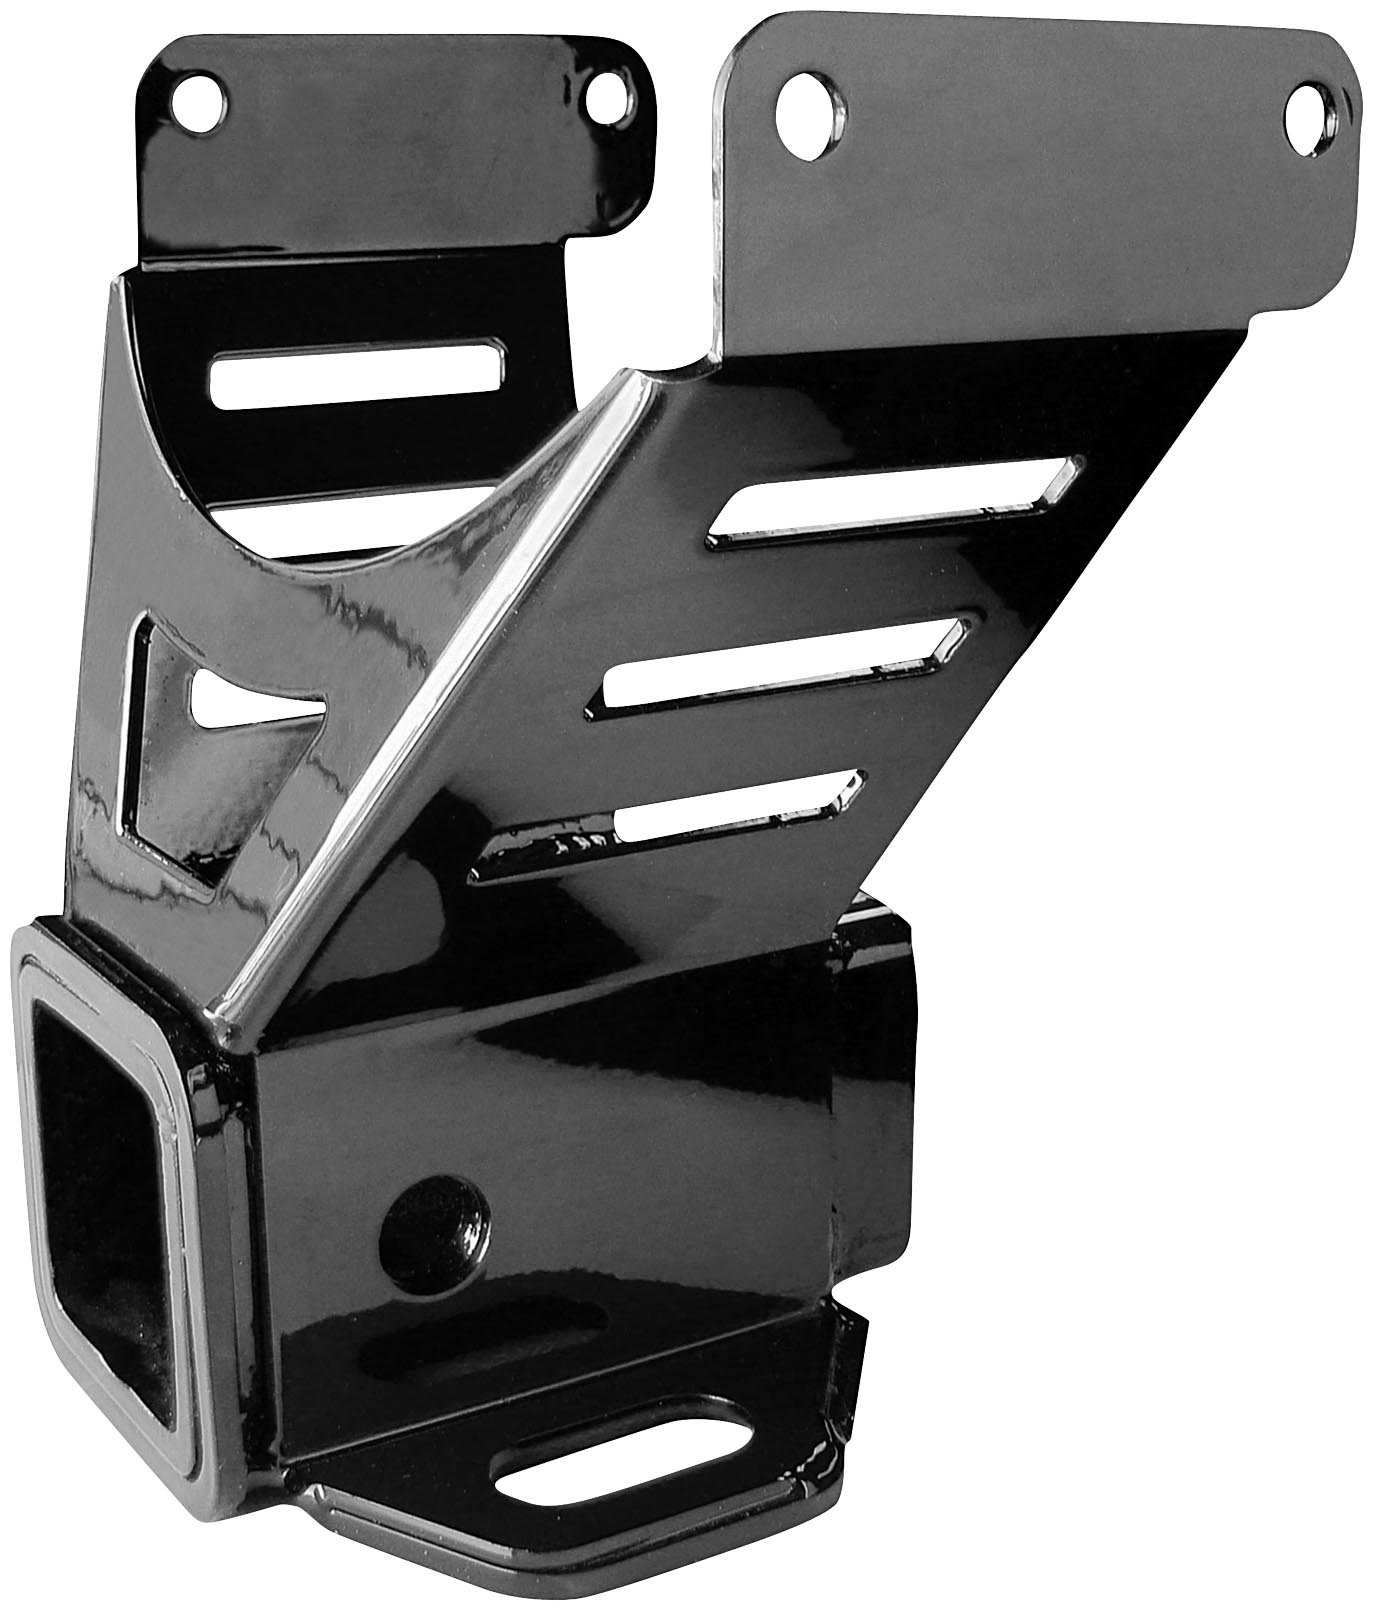 QUADBOSS ATV TRAILER HITCH 2 IN POLARIS SPORTSMAN 03-09